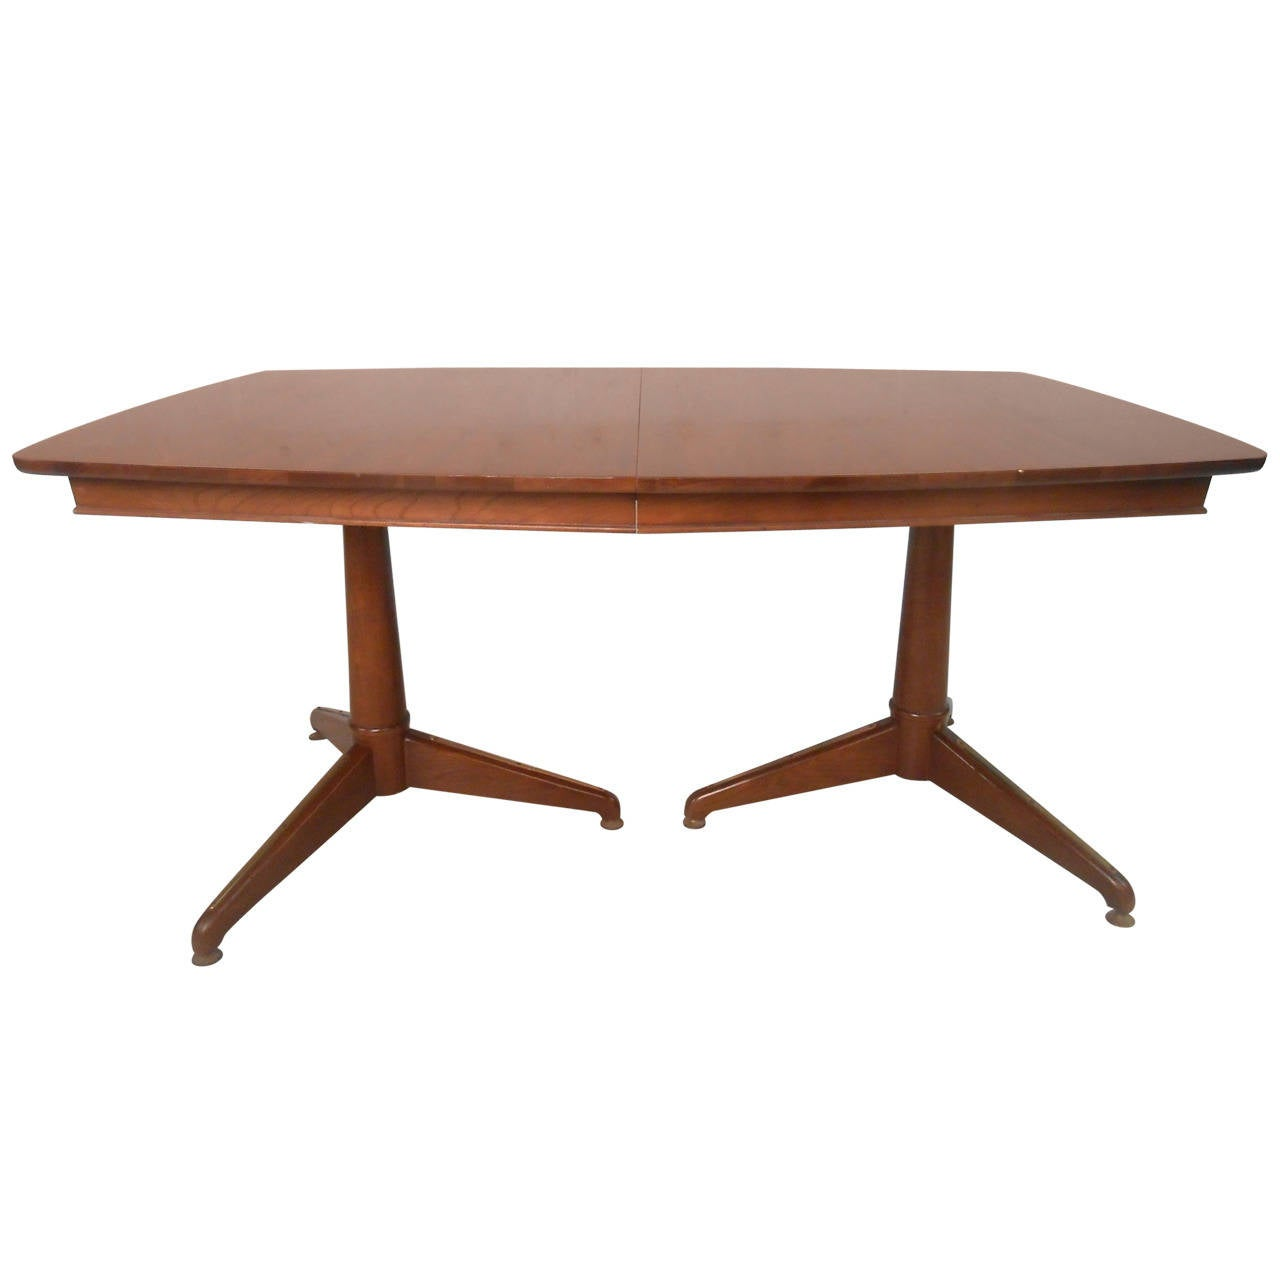 Mid Century Modern Dining: Mid-Century Modern Kent Coffey Perspecta Dining Table For